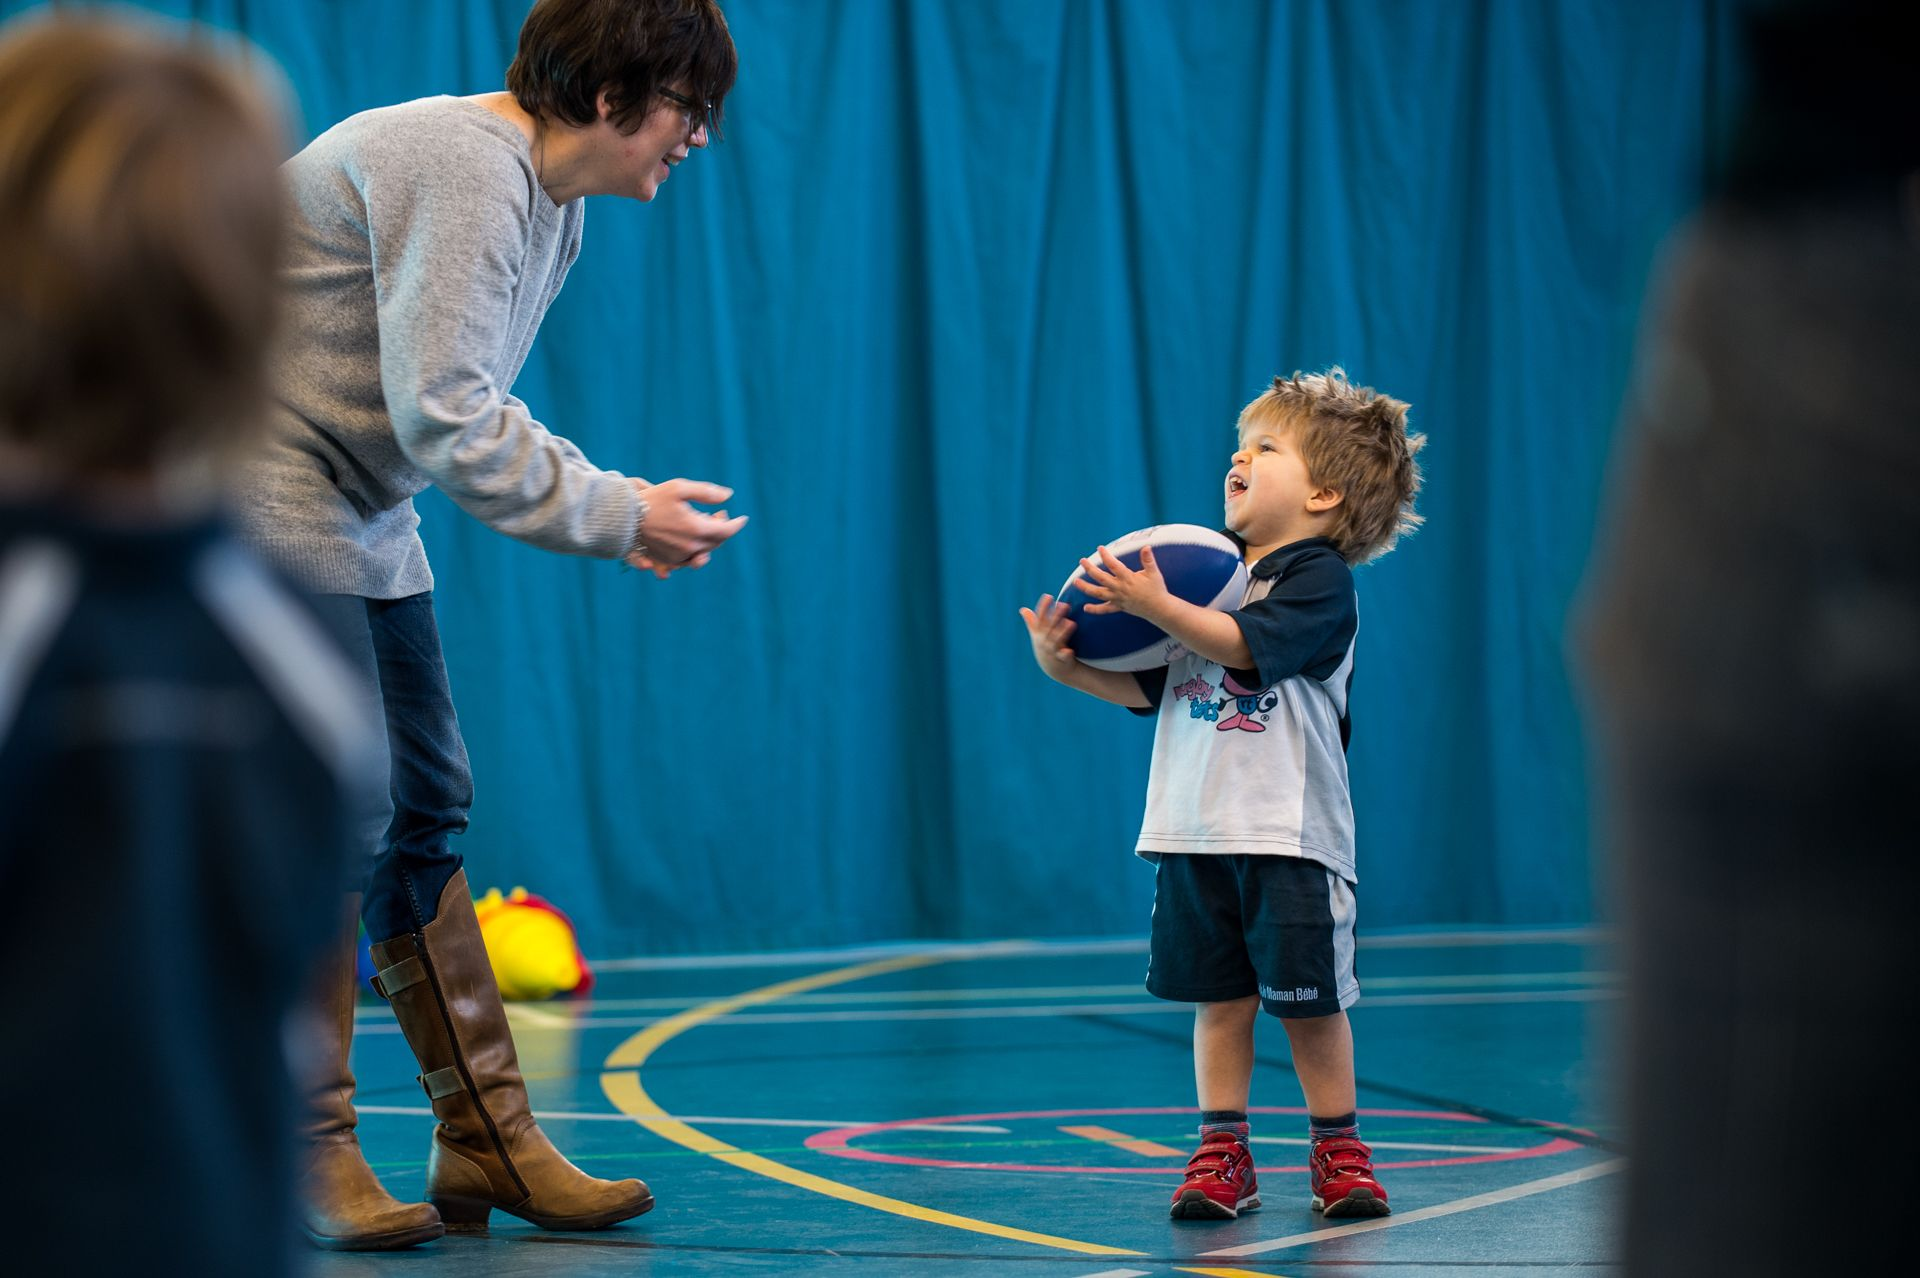 Pin By Rugbytots On Rugbytots